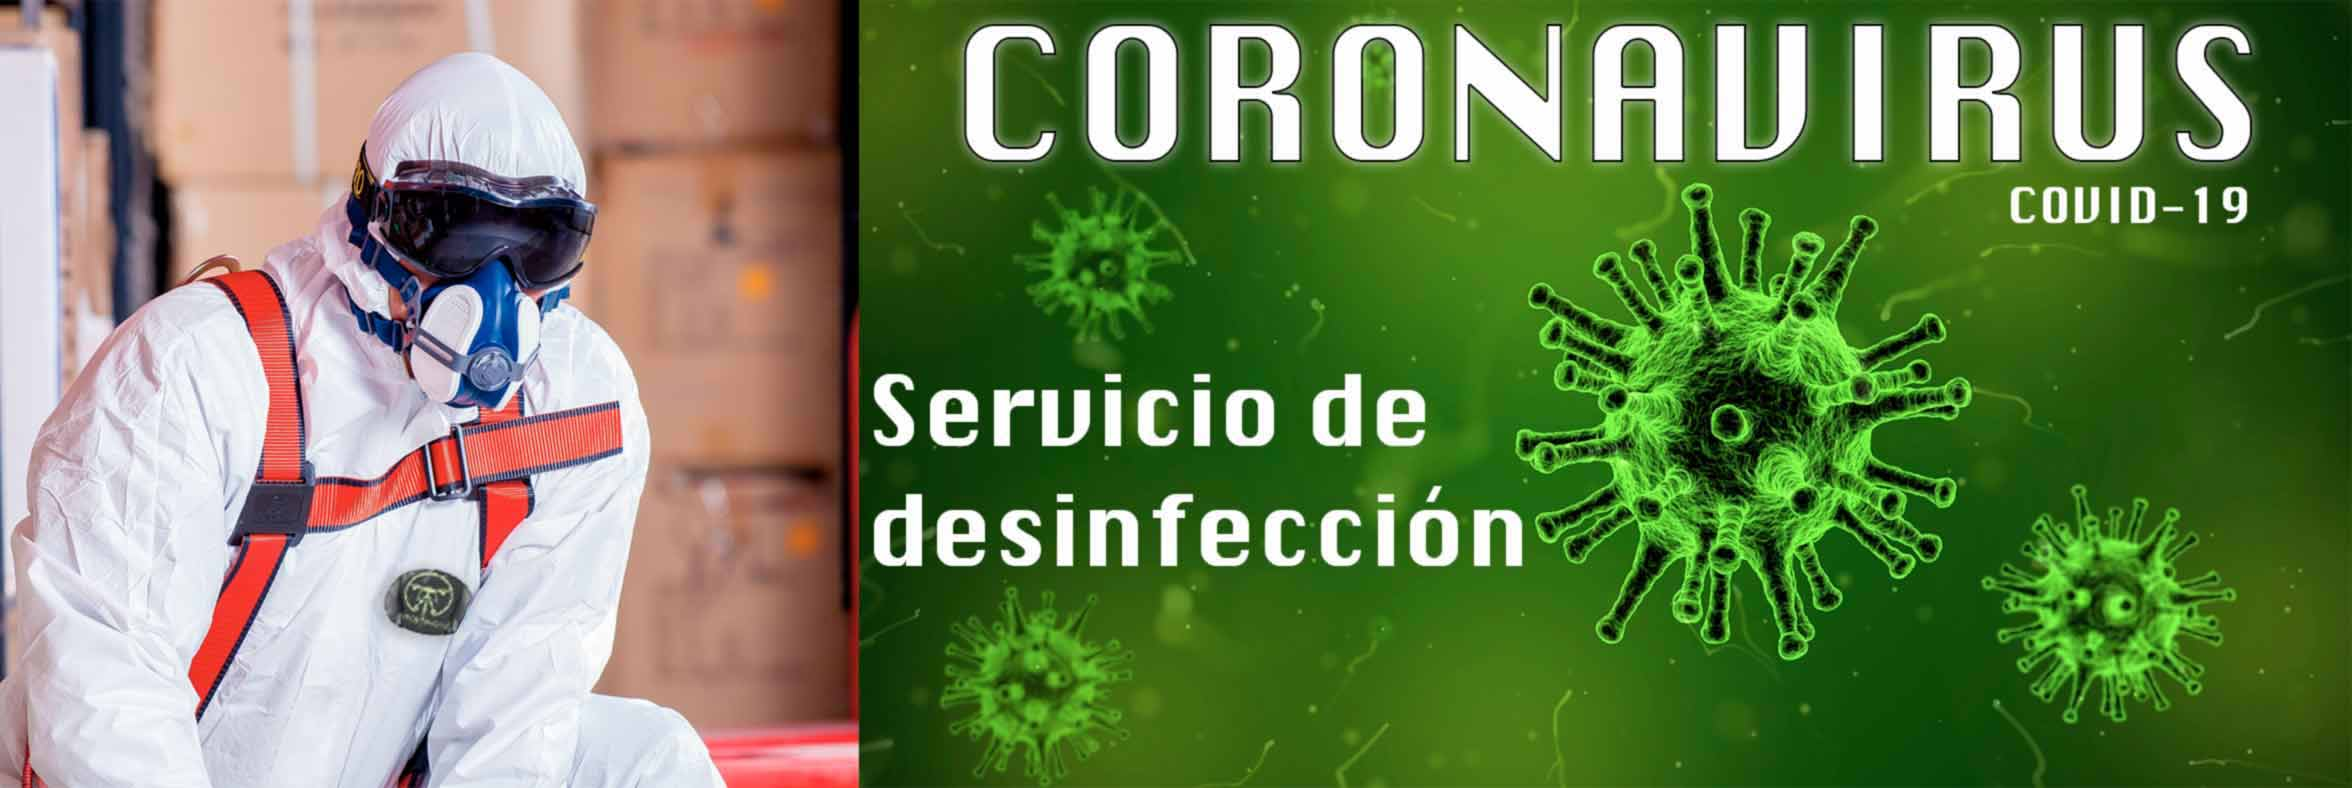 Image of the disinfection service of the coronavirus COVID 19